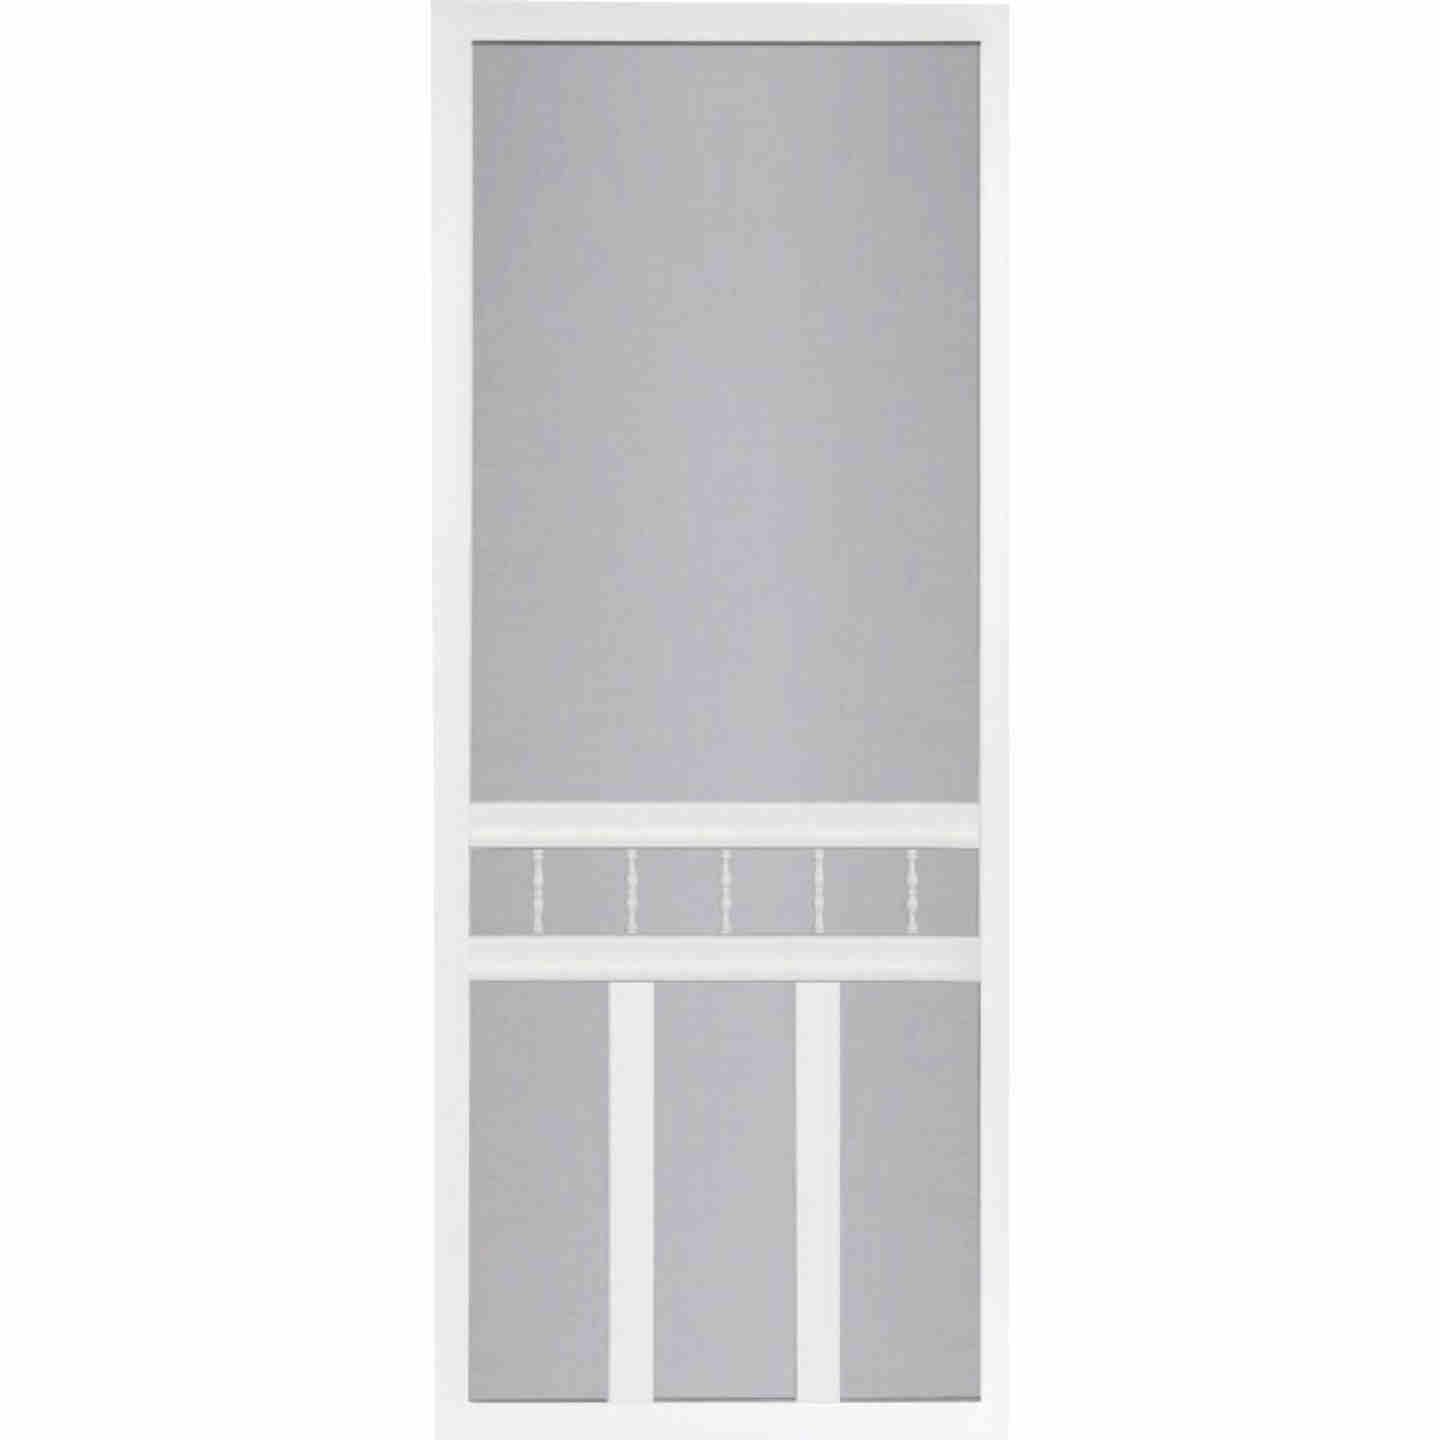 Screen Tight Waccamaw 36 In. W x 80 In. H x 1 In. Thick White Vinyl Screen Door Image 1